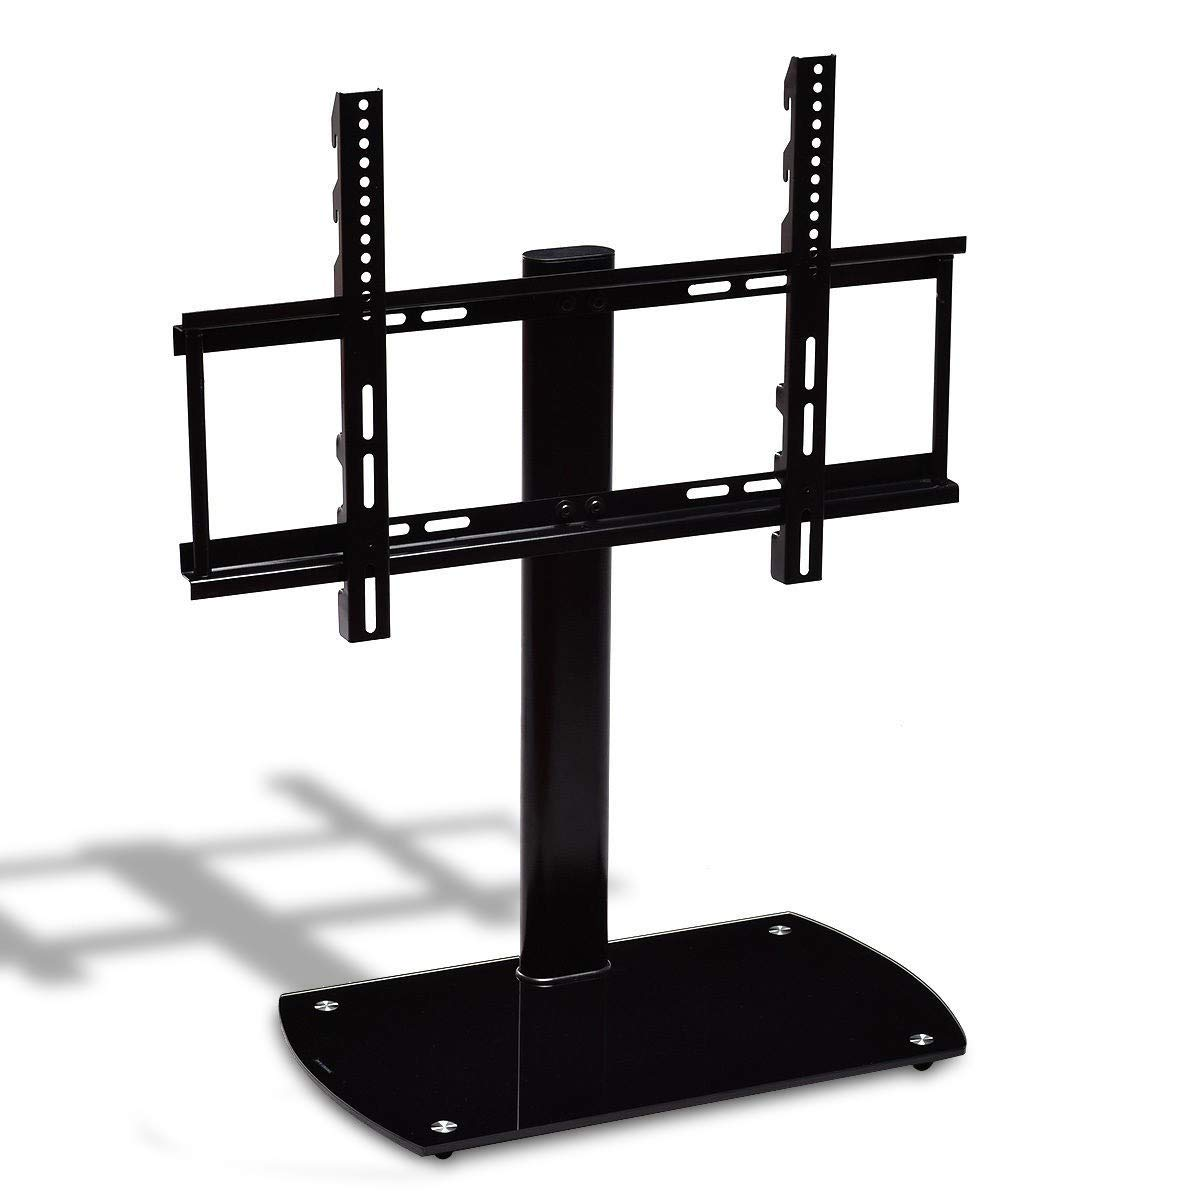 MRT SUPPLY Universal TV Stand Base Mount for 37'' - 47'' Screens with Ebook